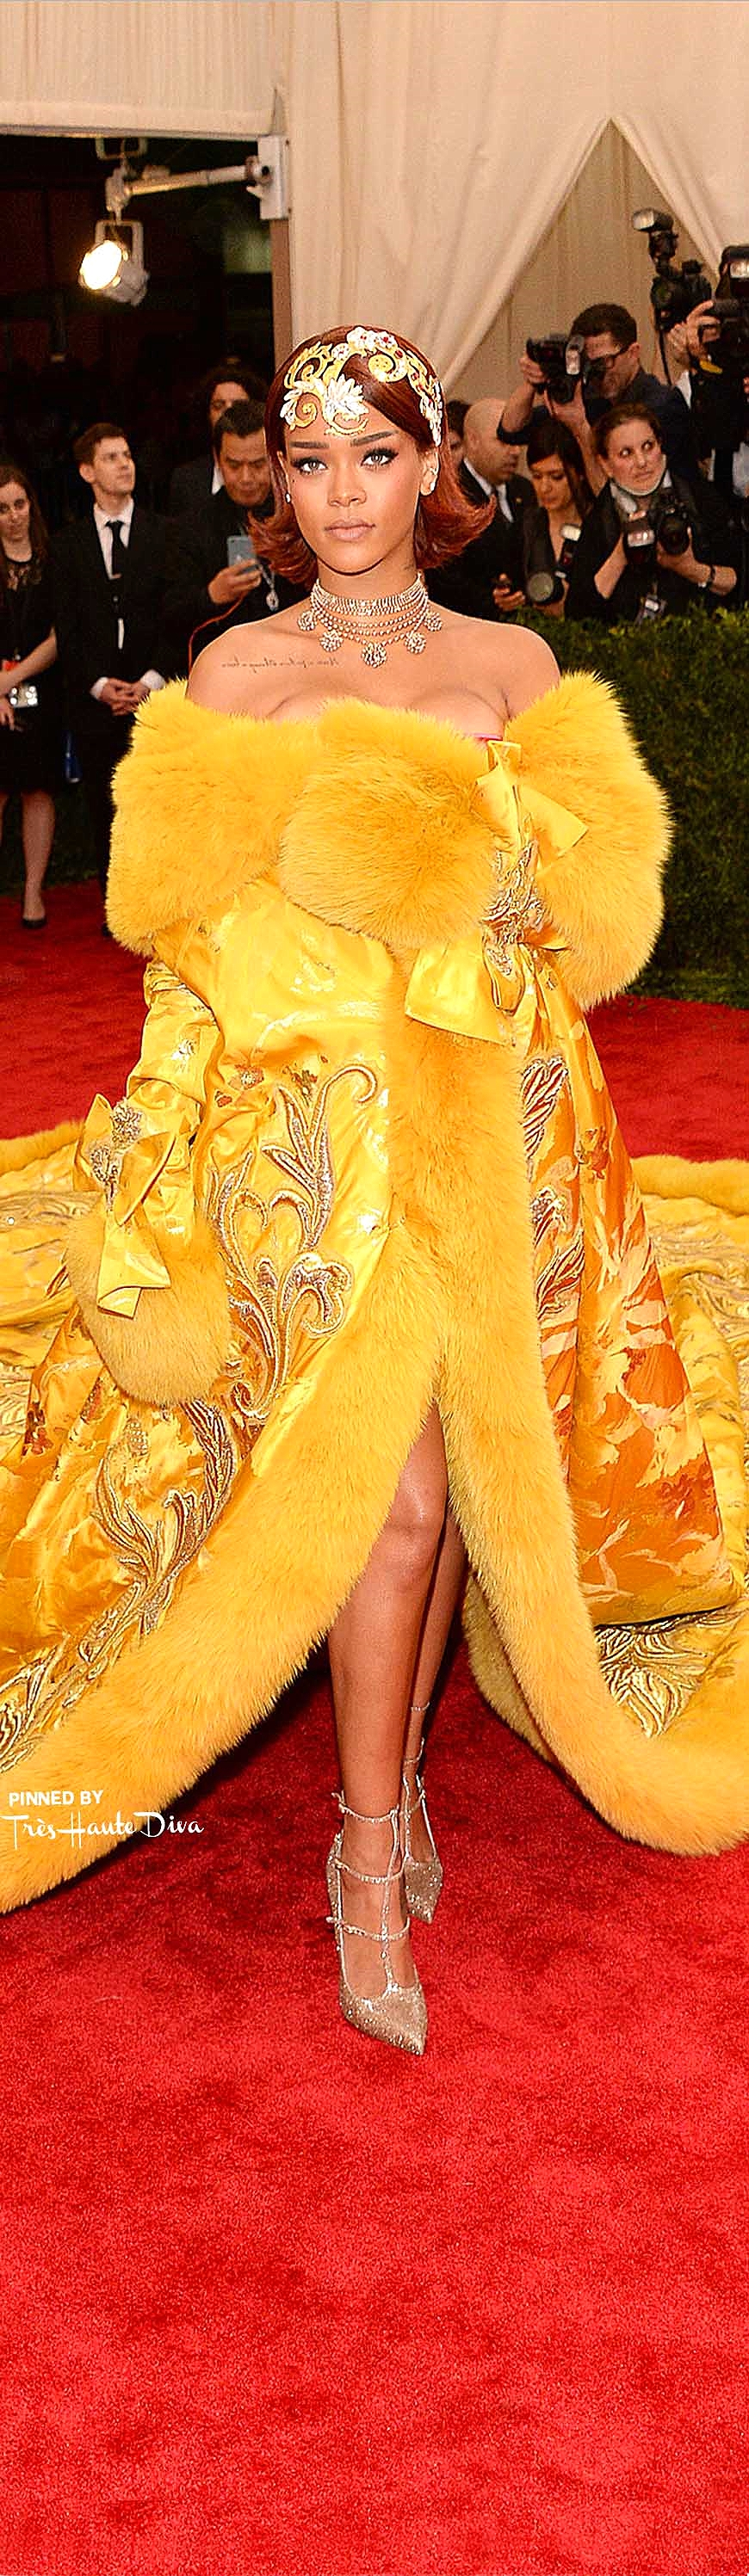 Rihanna in Guo Pei Couture and Louboutin Shoes   Getty Images / Kevin Mazur